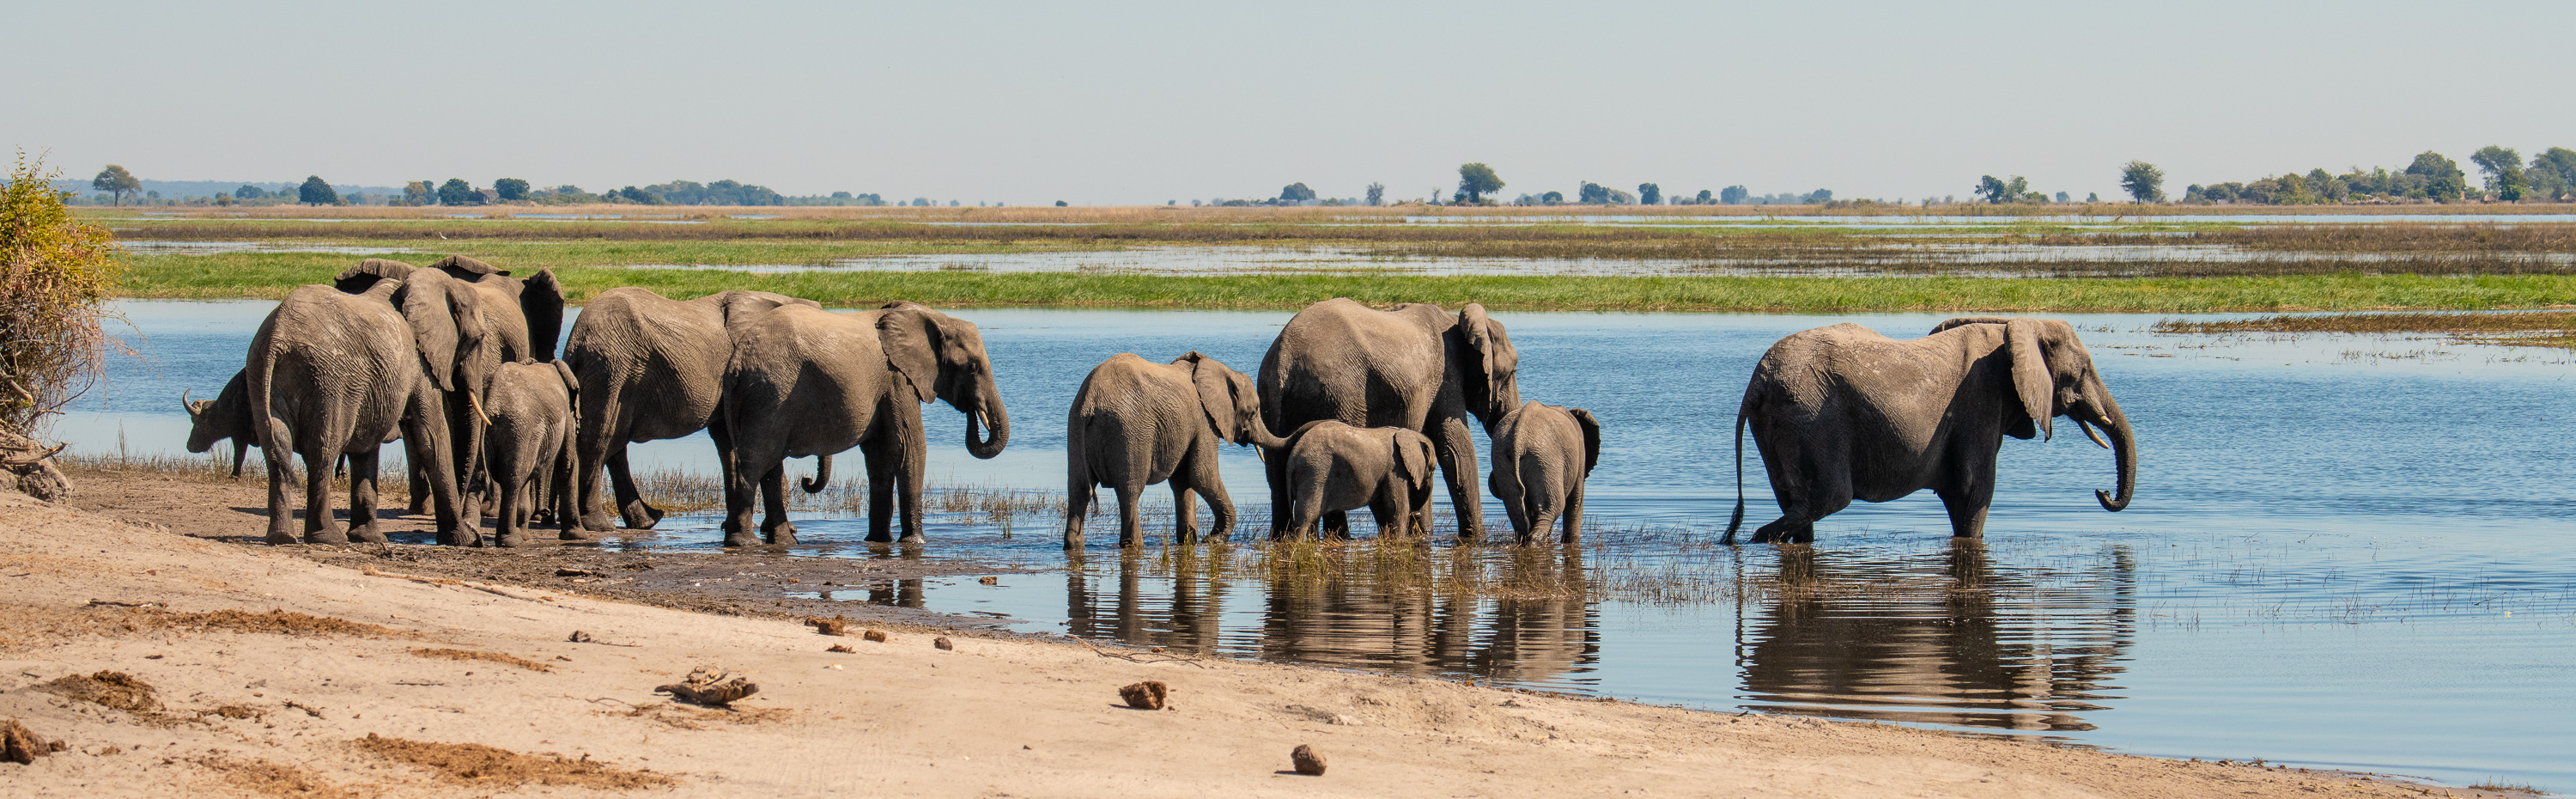 Elephants in Africa getting their feet wet in the Chobe River